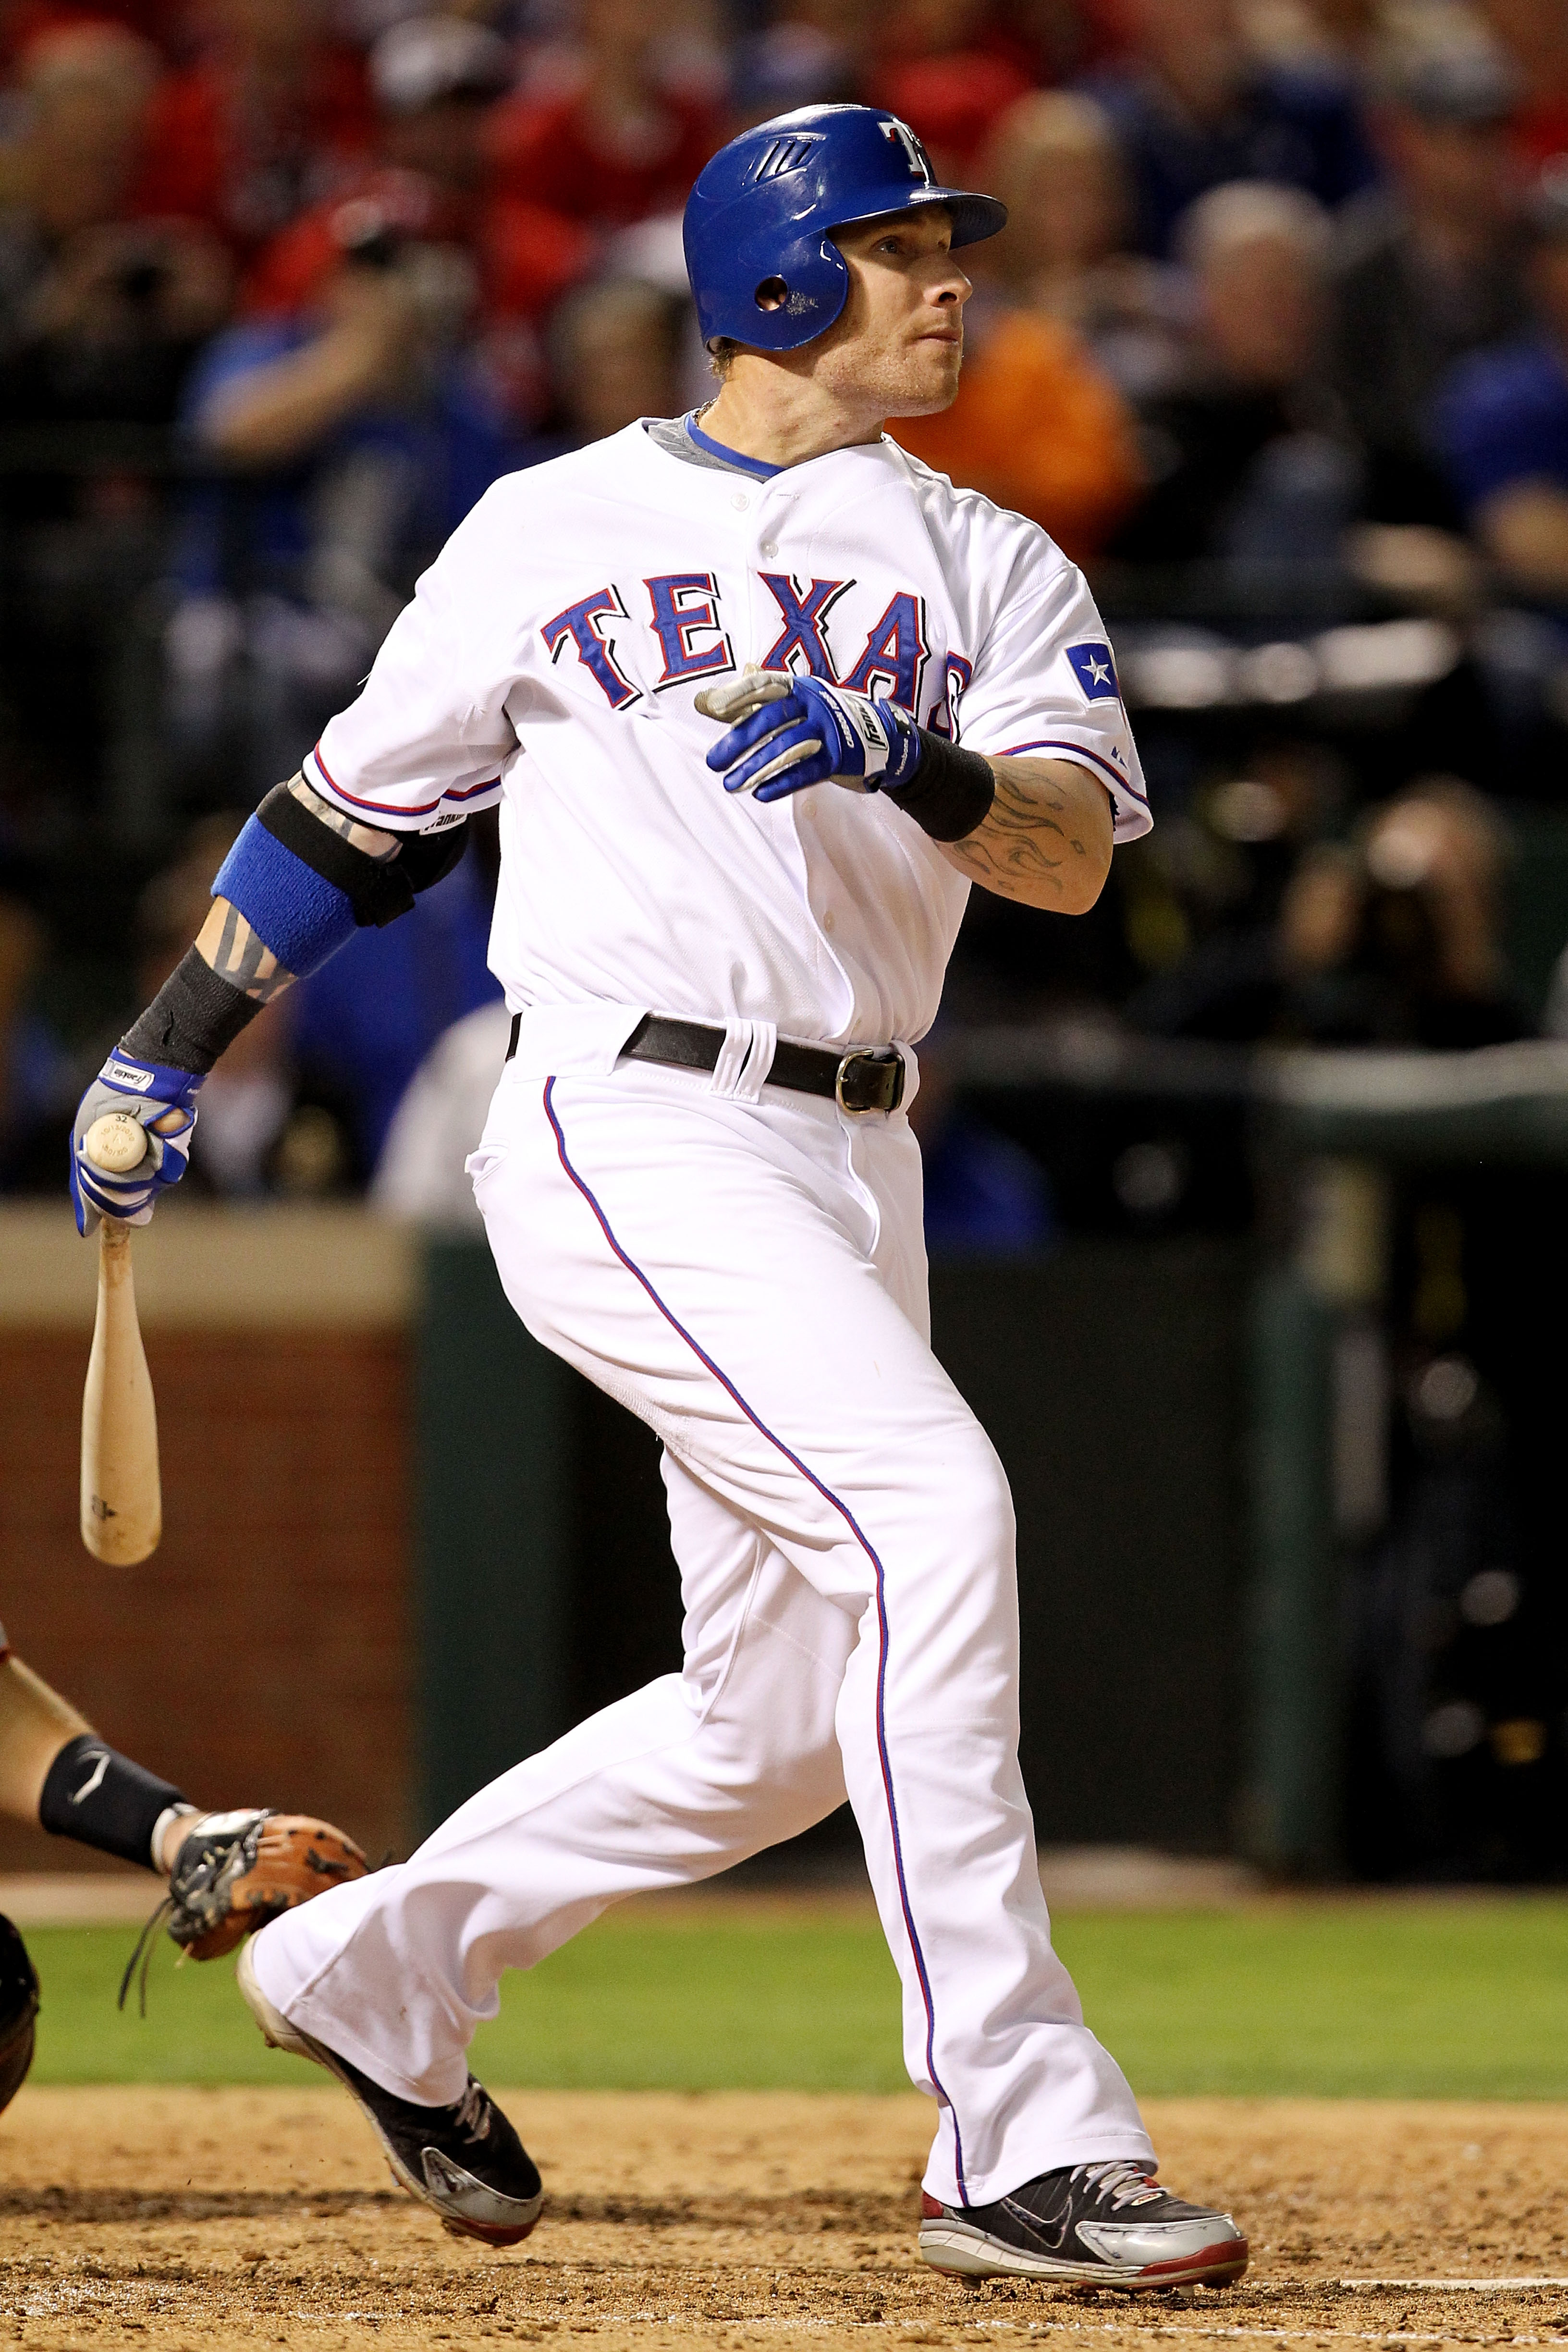 ARLINGTON, TX - OCTOBER 30:  Josh Hamilton #32 of the Texas Rangers hits a solo home run in the bottom of the fifht inning against the San Francisco Giants in Game Three of the 2010 MLB World Series at Rangers Ballpark in Arlington on October 30, 2010 in